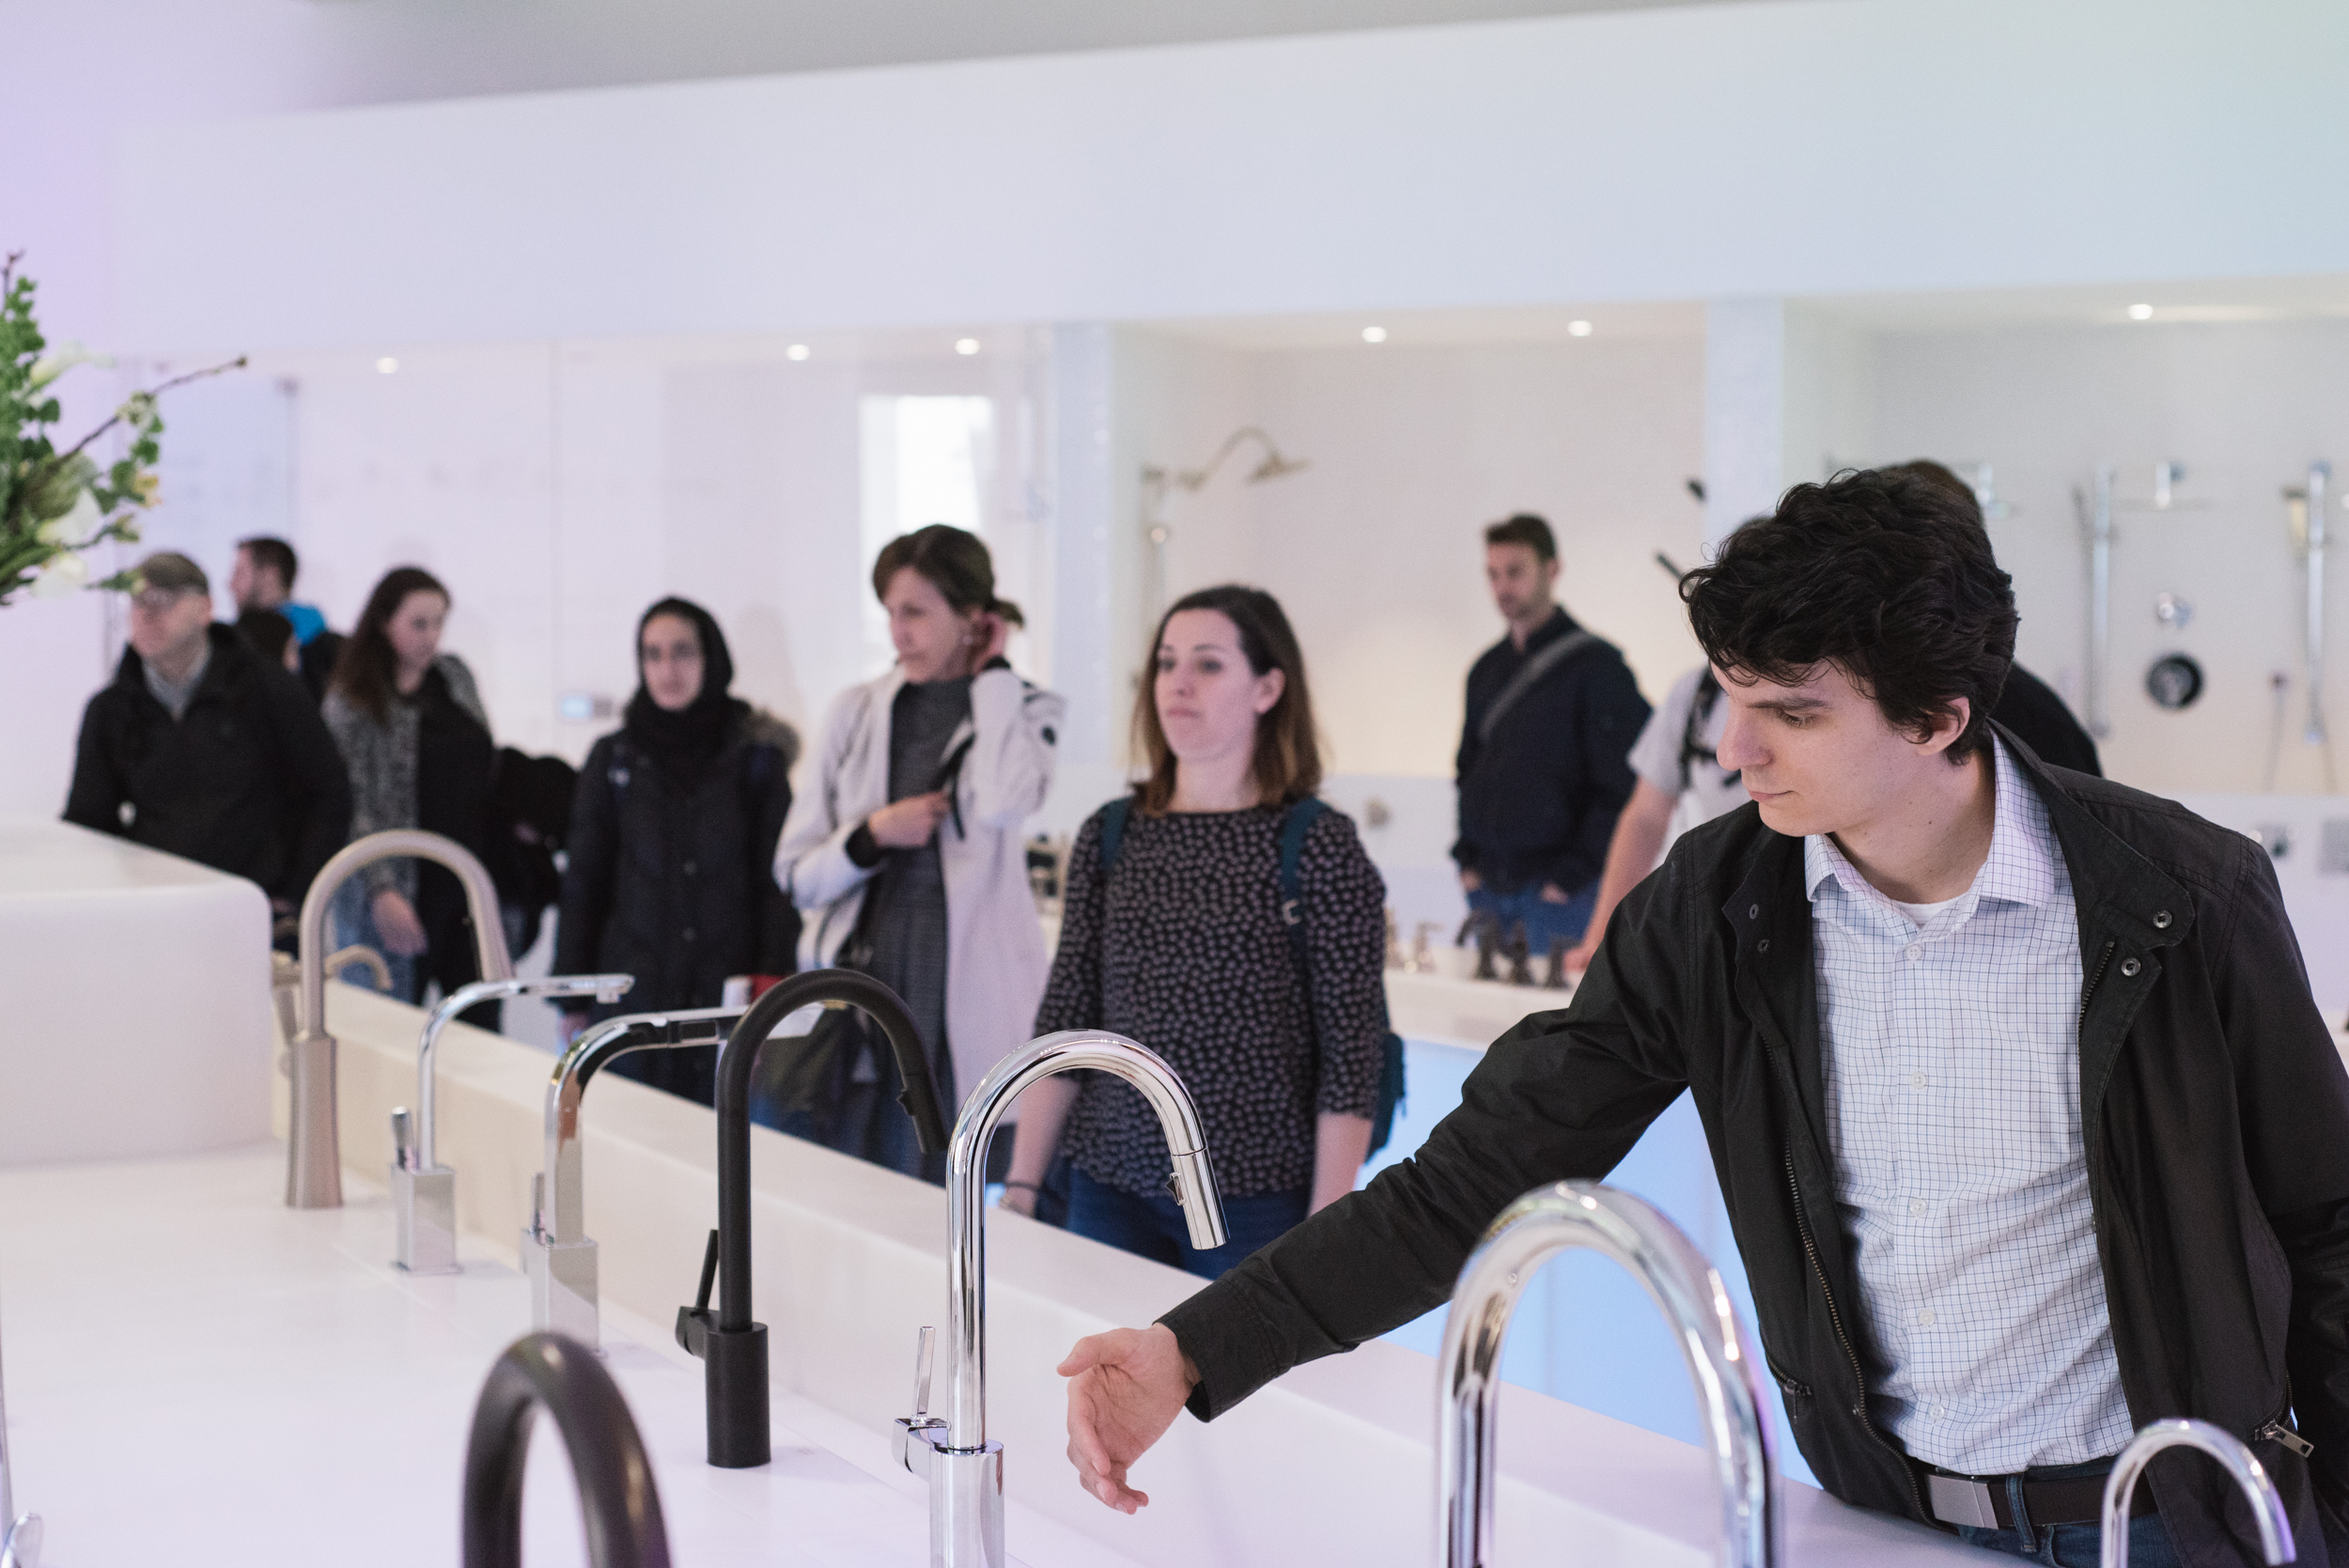 Zach tests an Align Kitchen Faucet at the Moen showroom